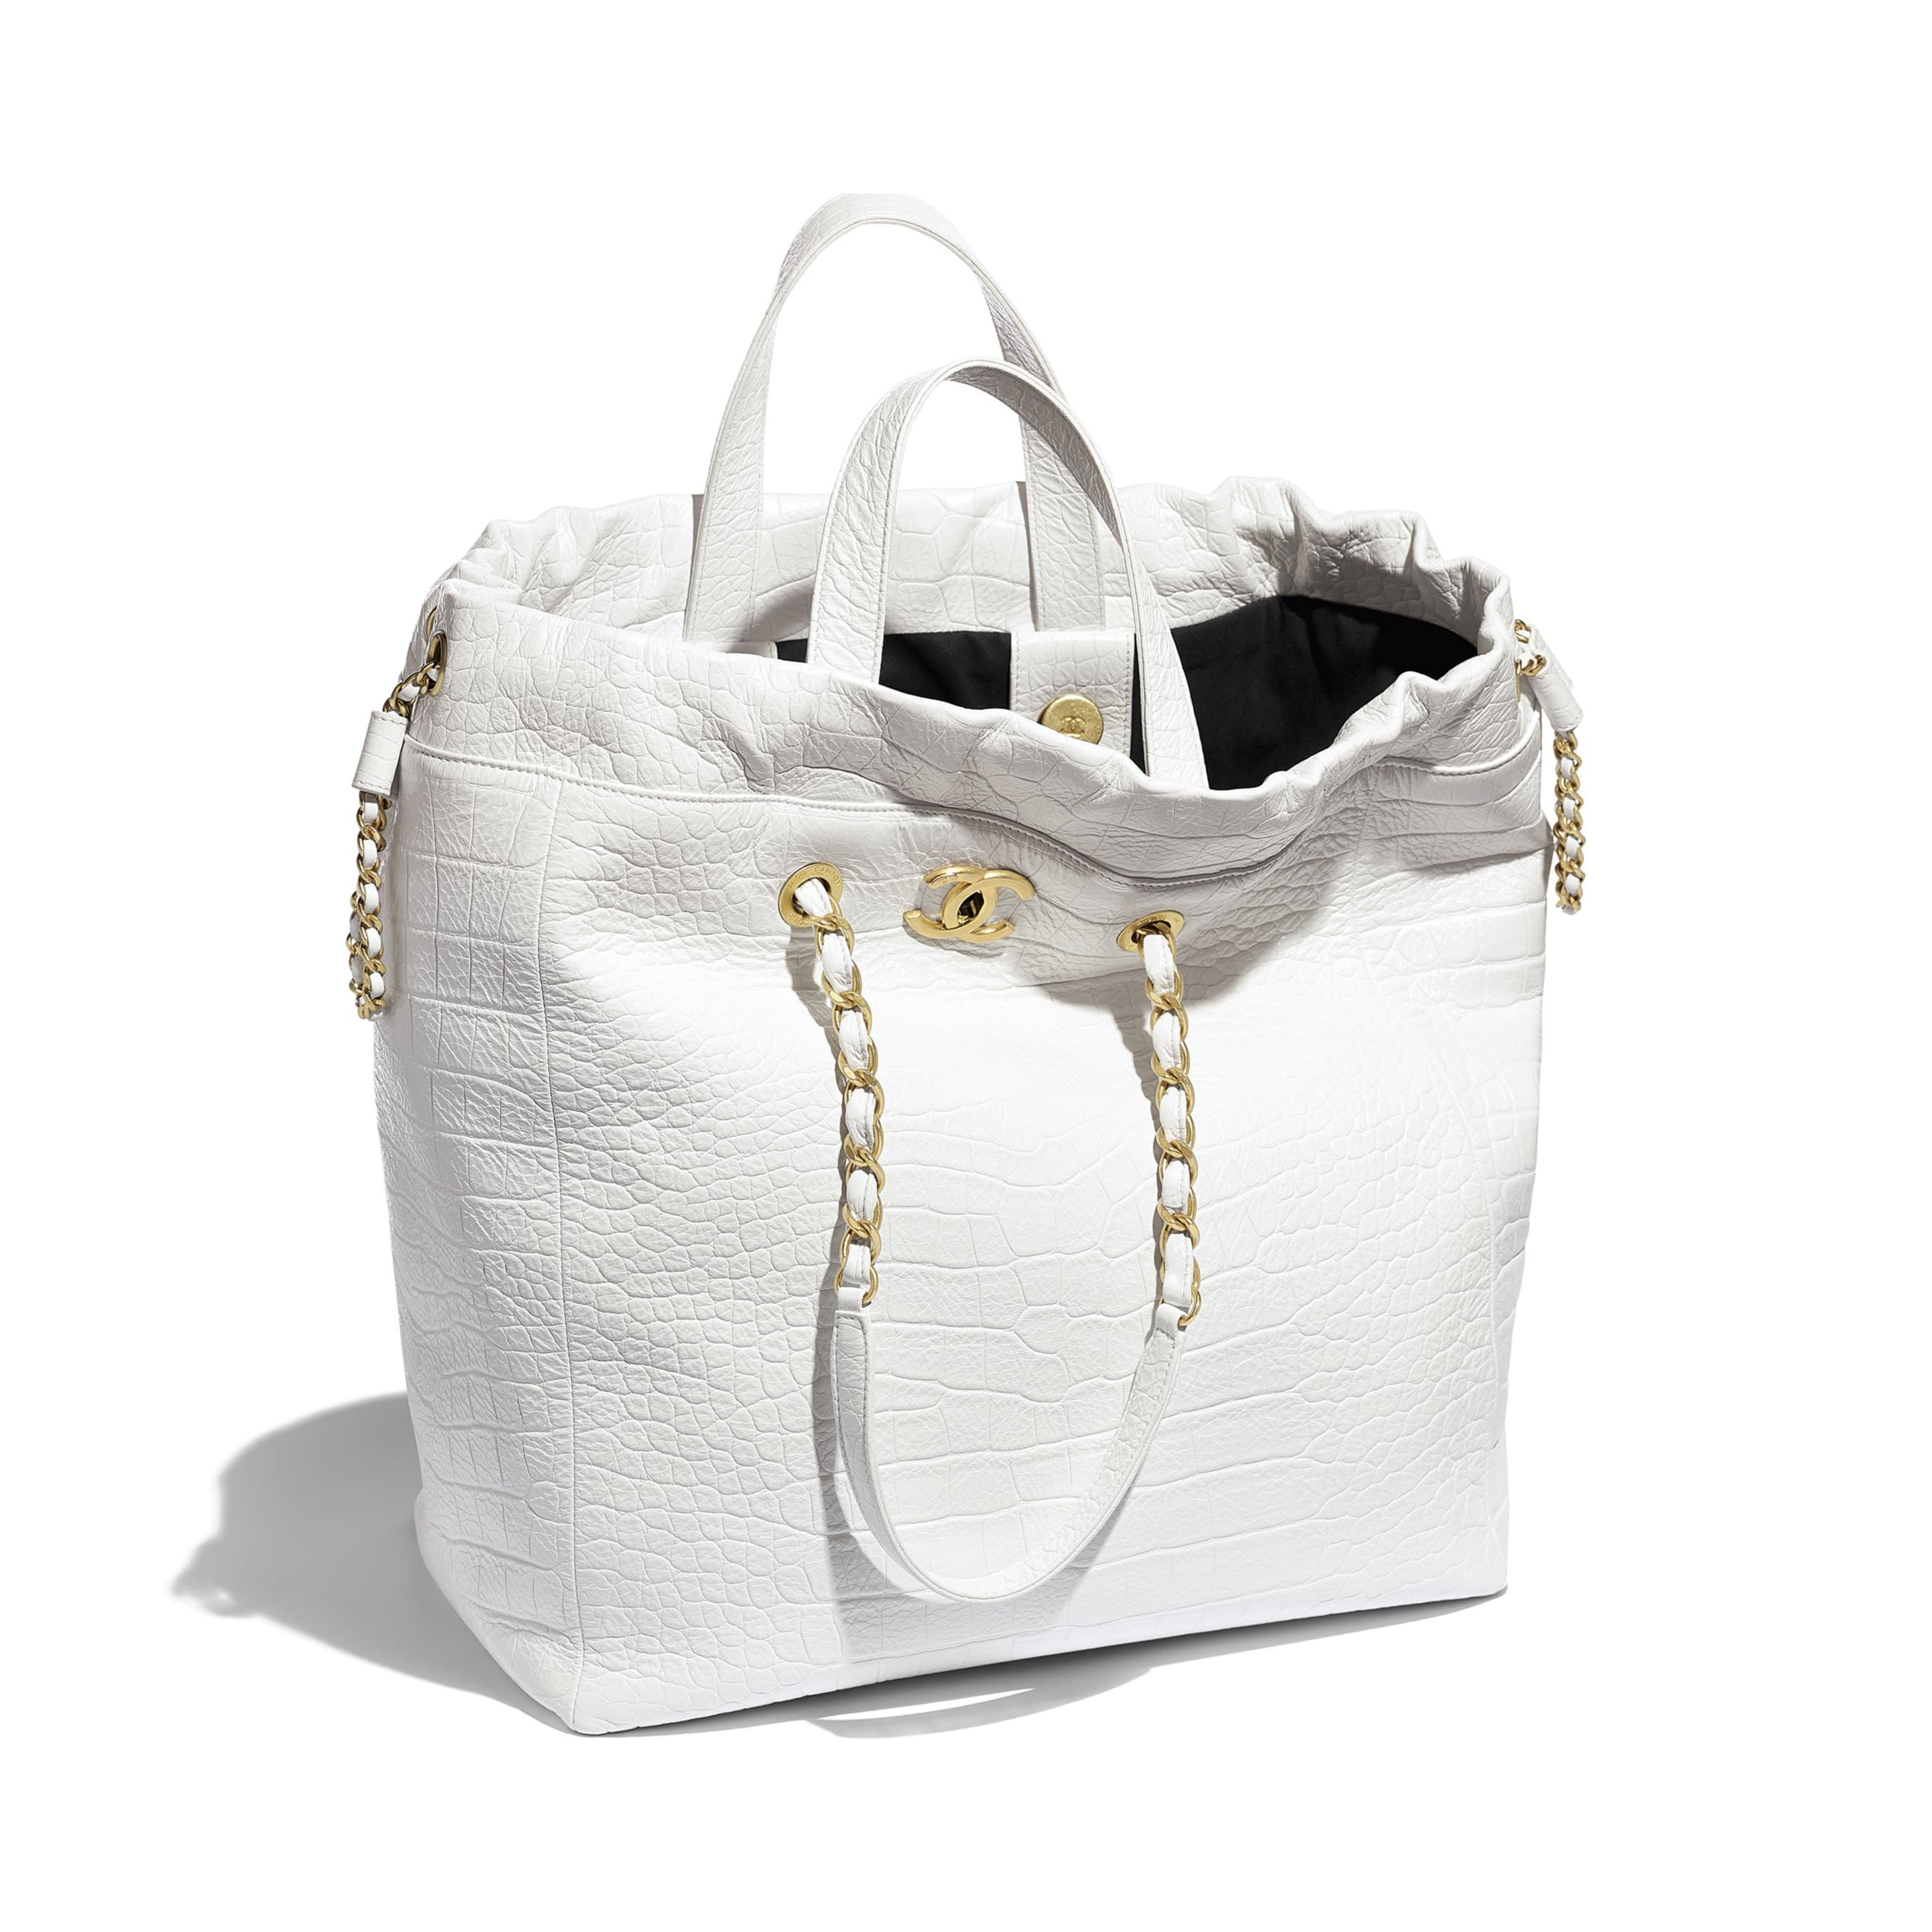 Large Shopping Bag - White - Crocodile Embossed Printed Leather & Gold-Tone Metal - Other view - see standard sized version